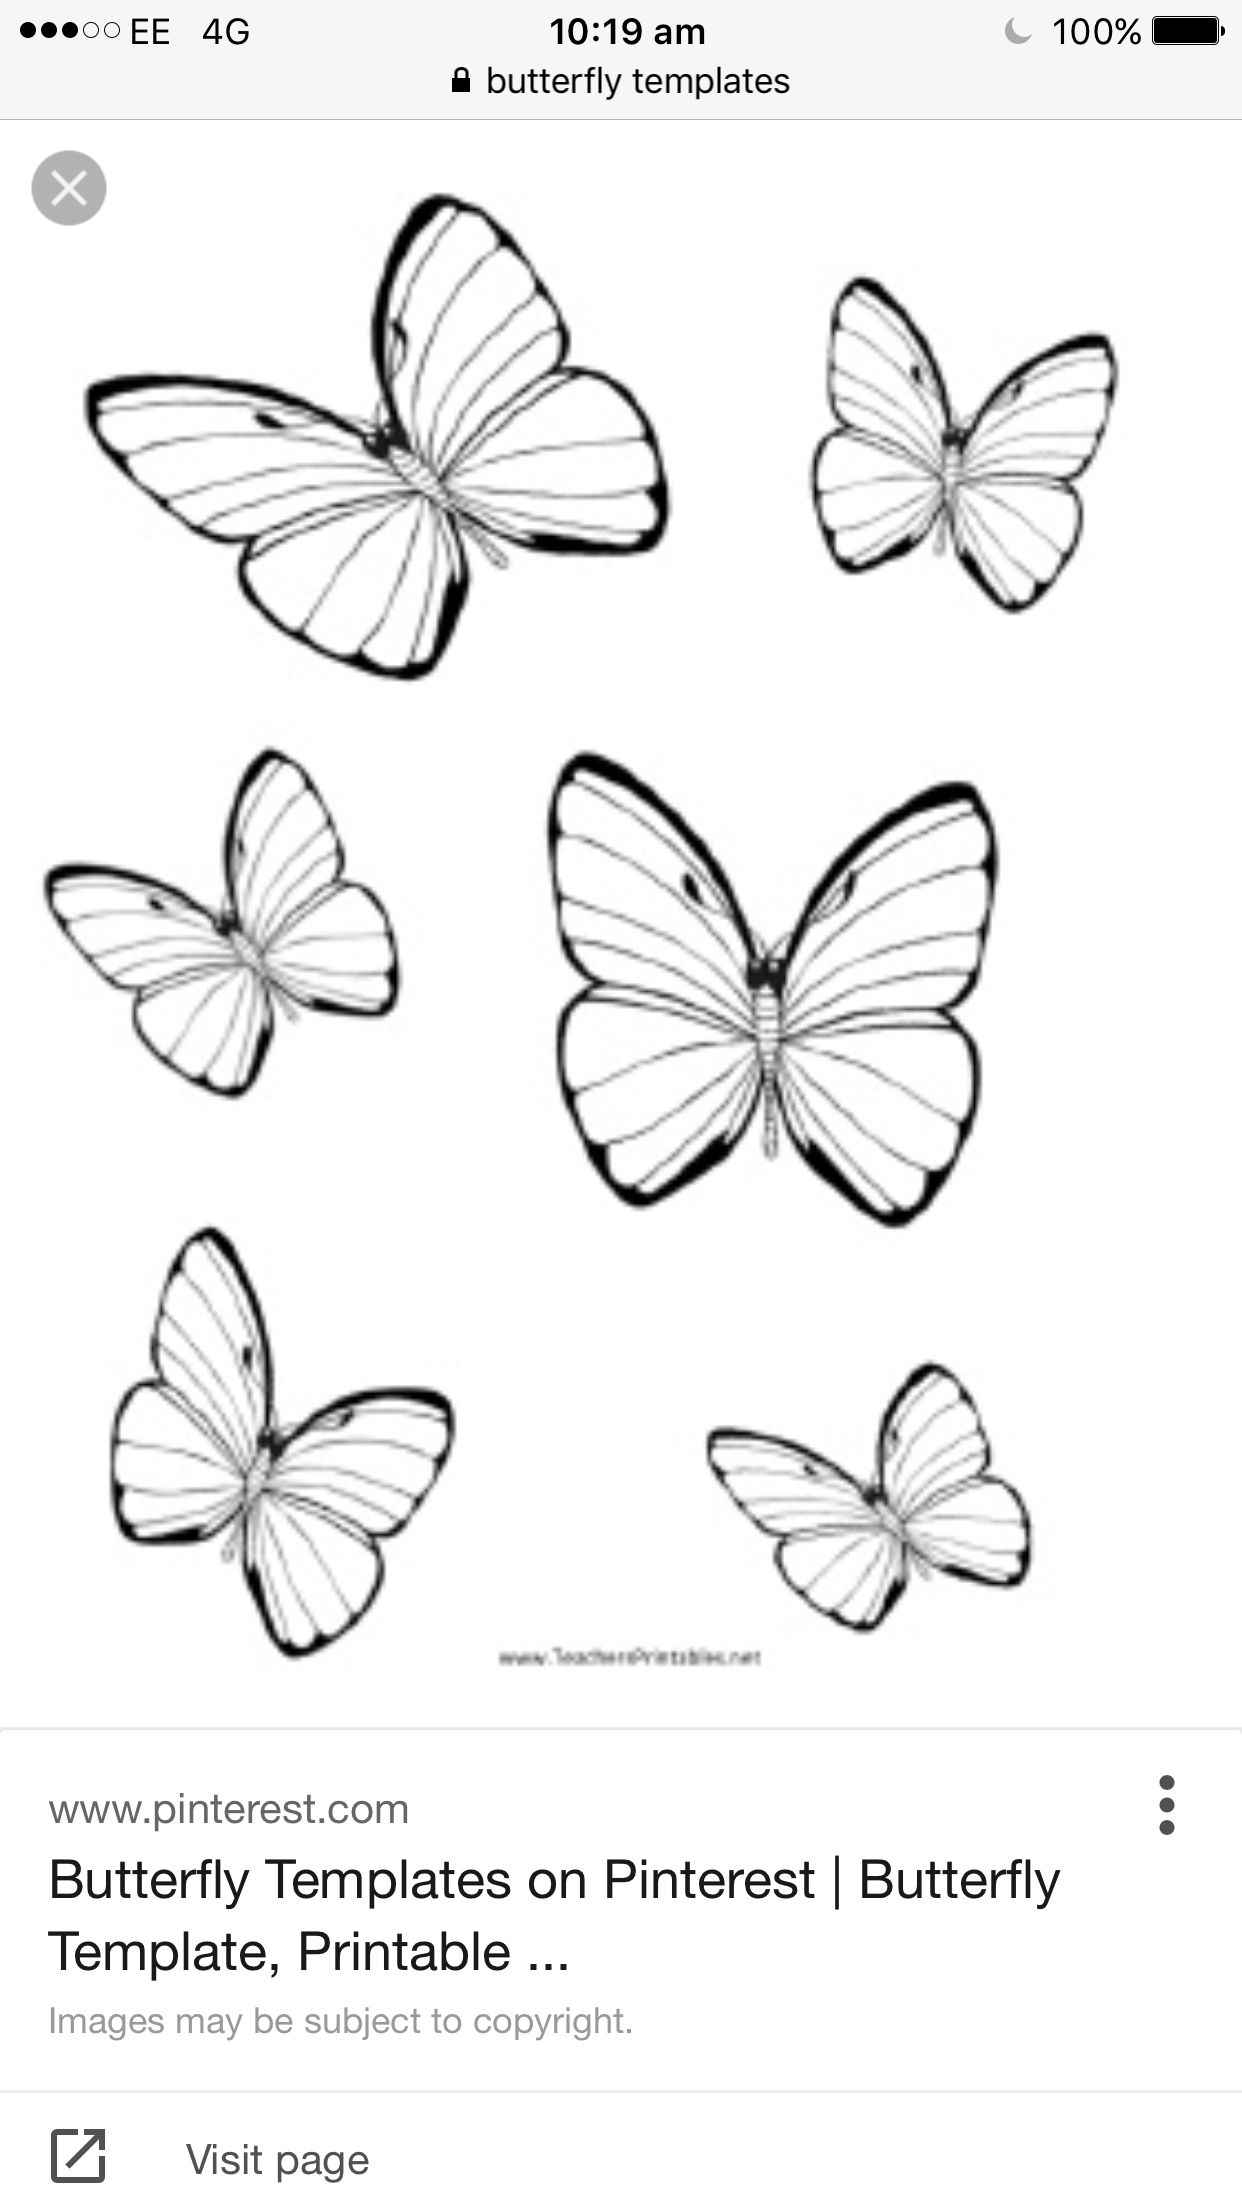 butter fly templates i used to create my project damian hirst